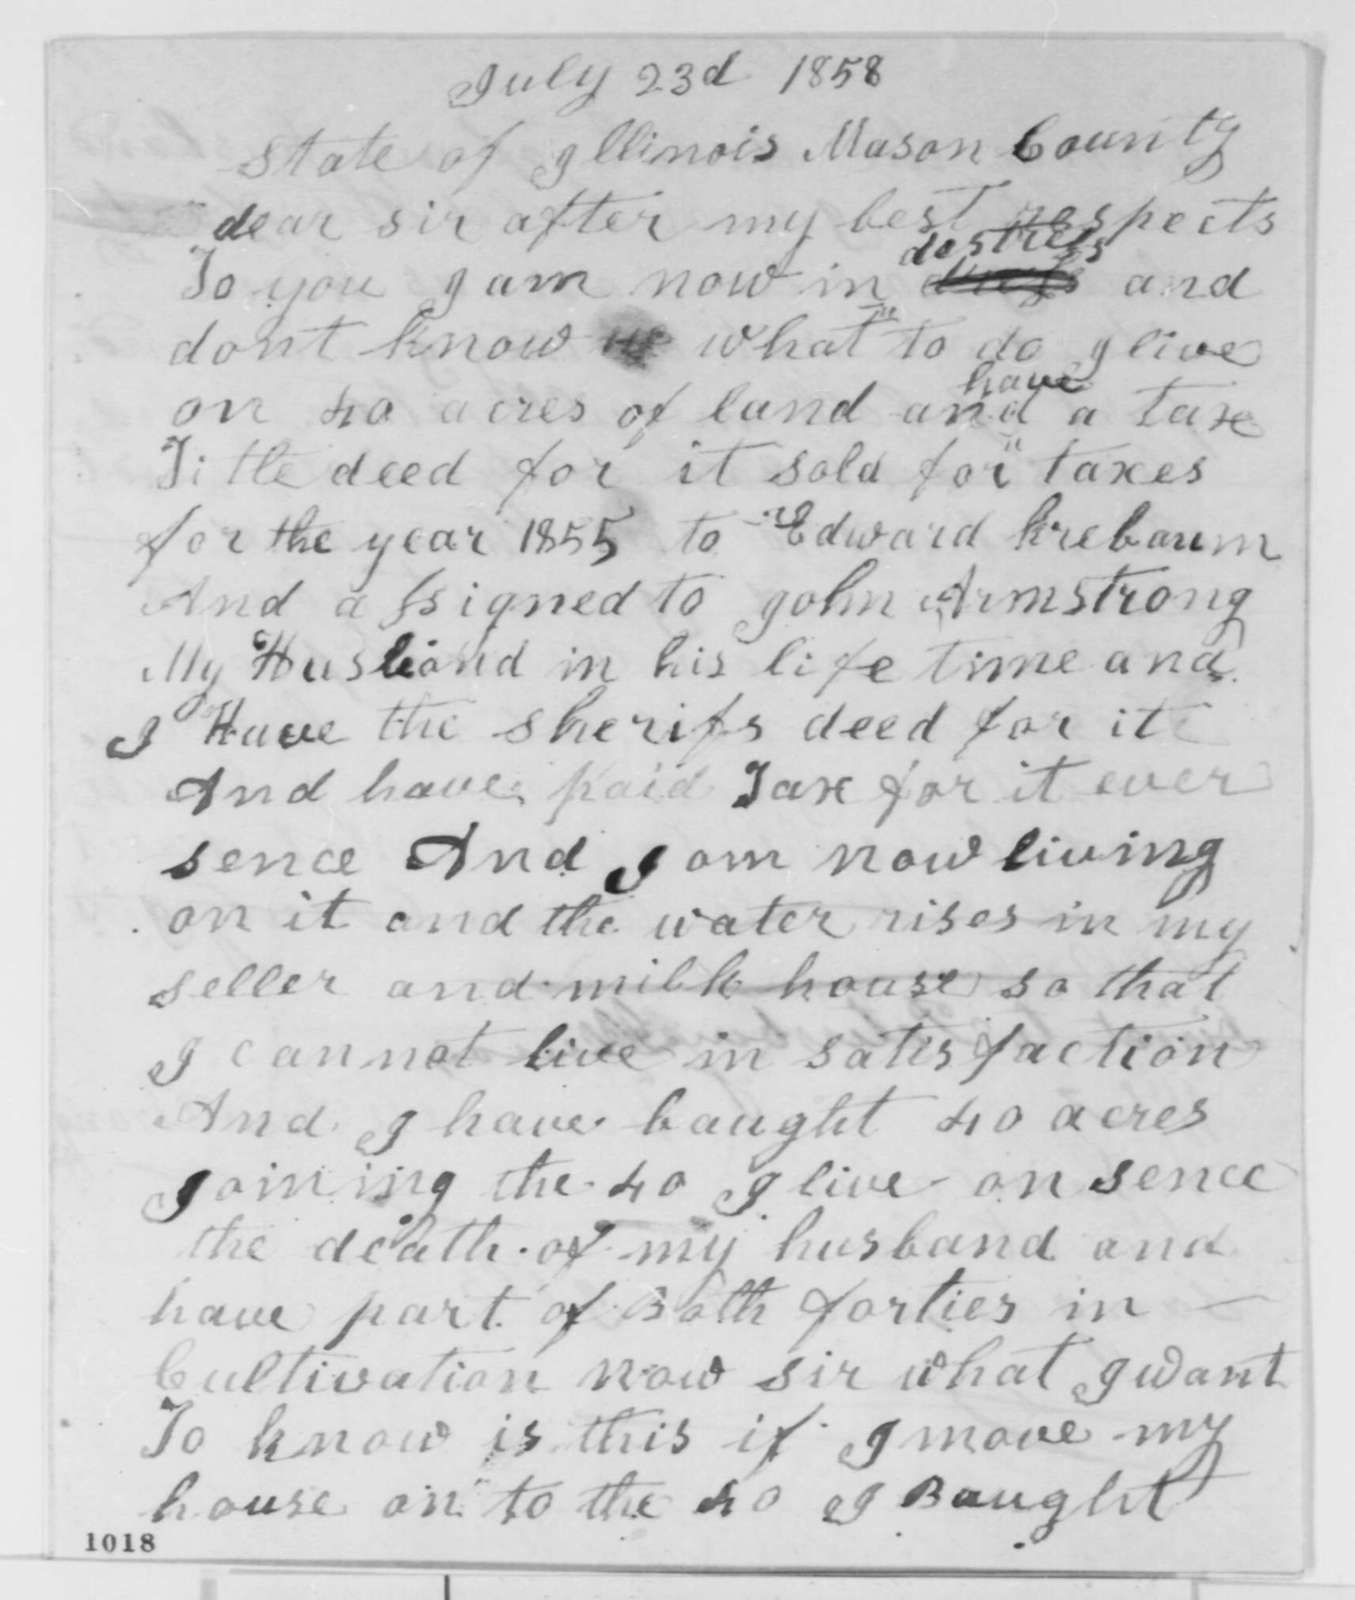 Hannah Armstrong to Abraham Lincoln, Friday, July 23, 1858  (Legal)